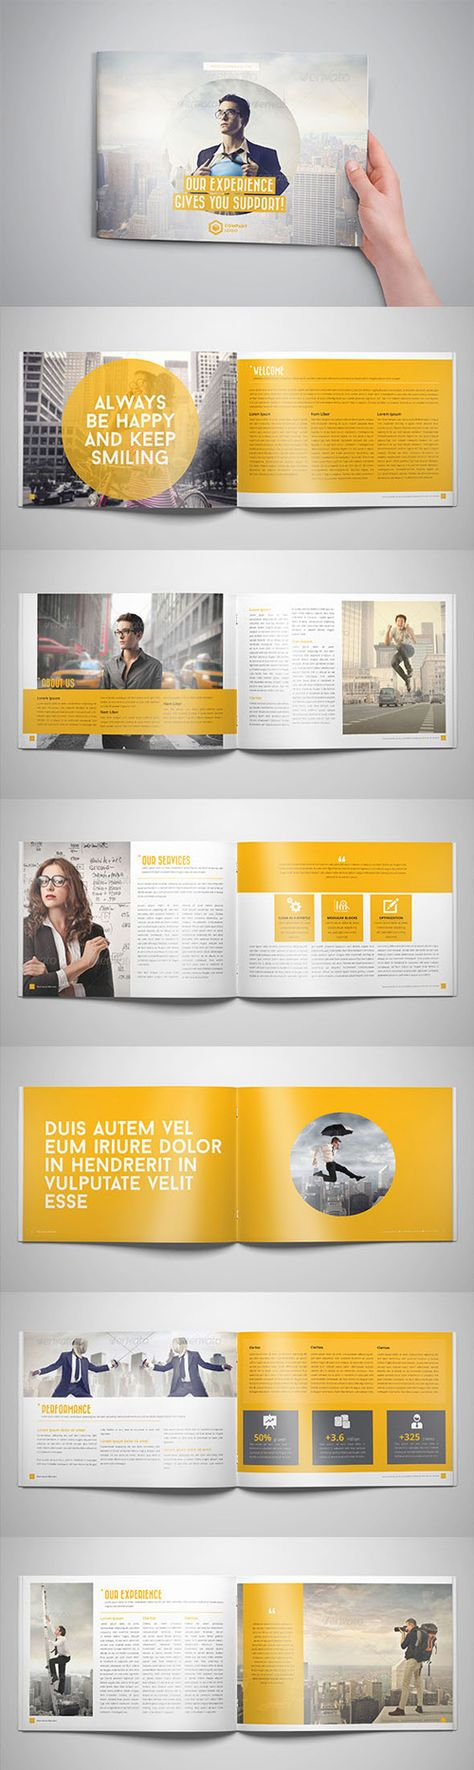 Business Horizontal Brochure | LAYOUT | Brochure | Pinterest ...